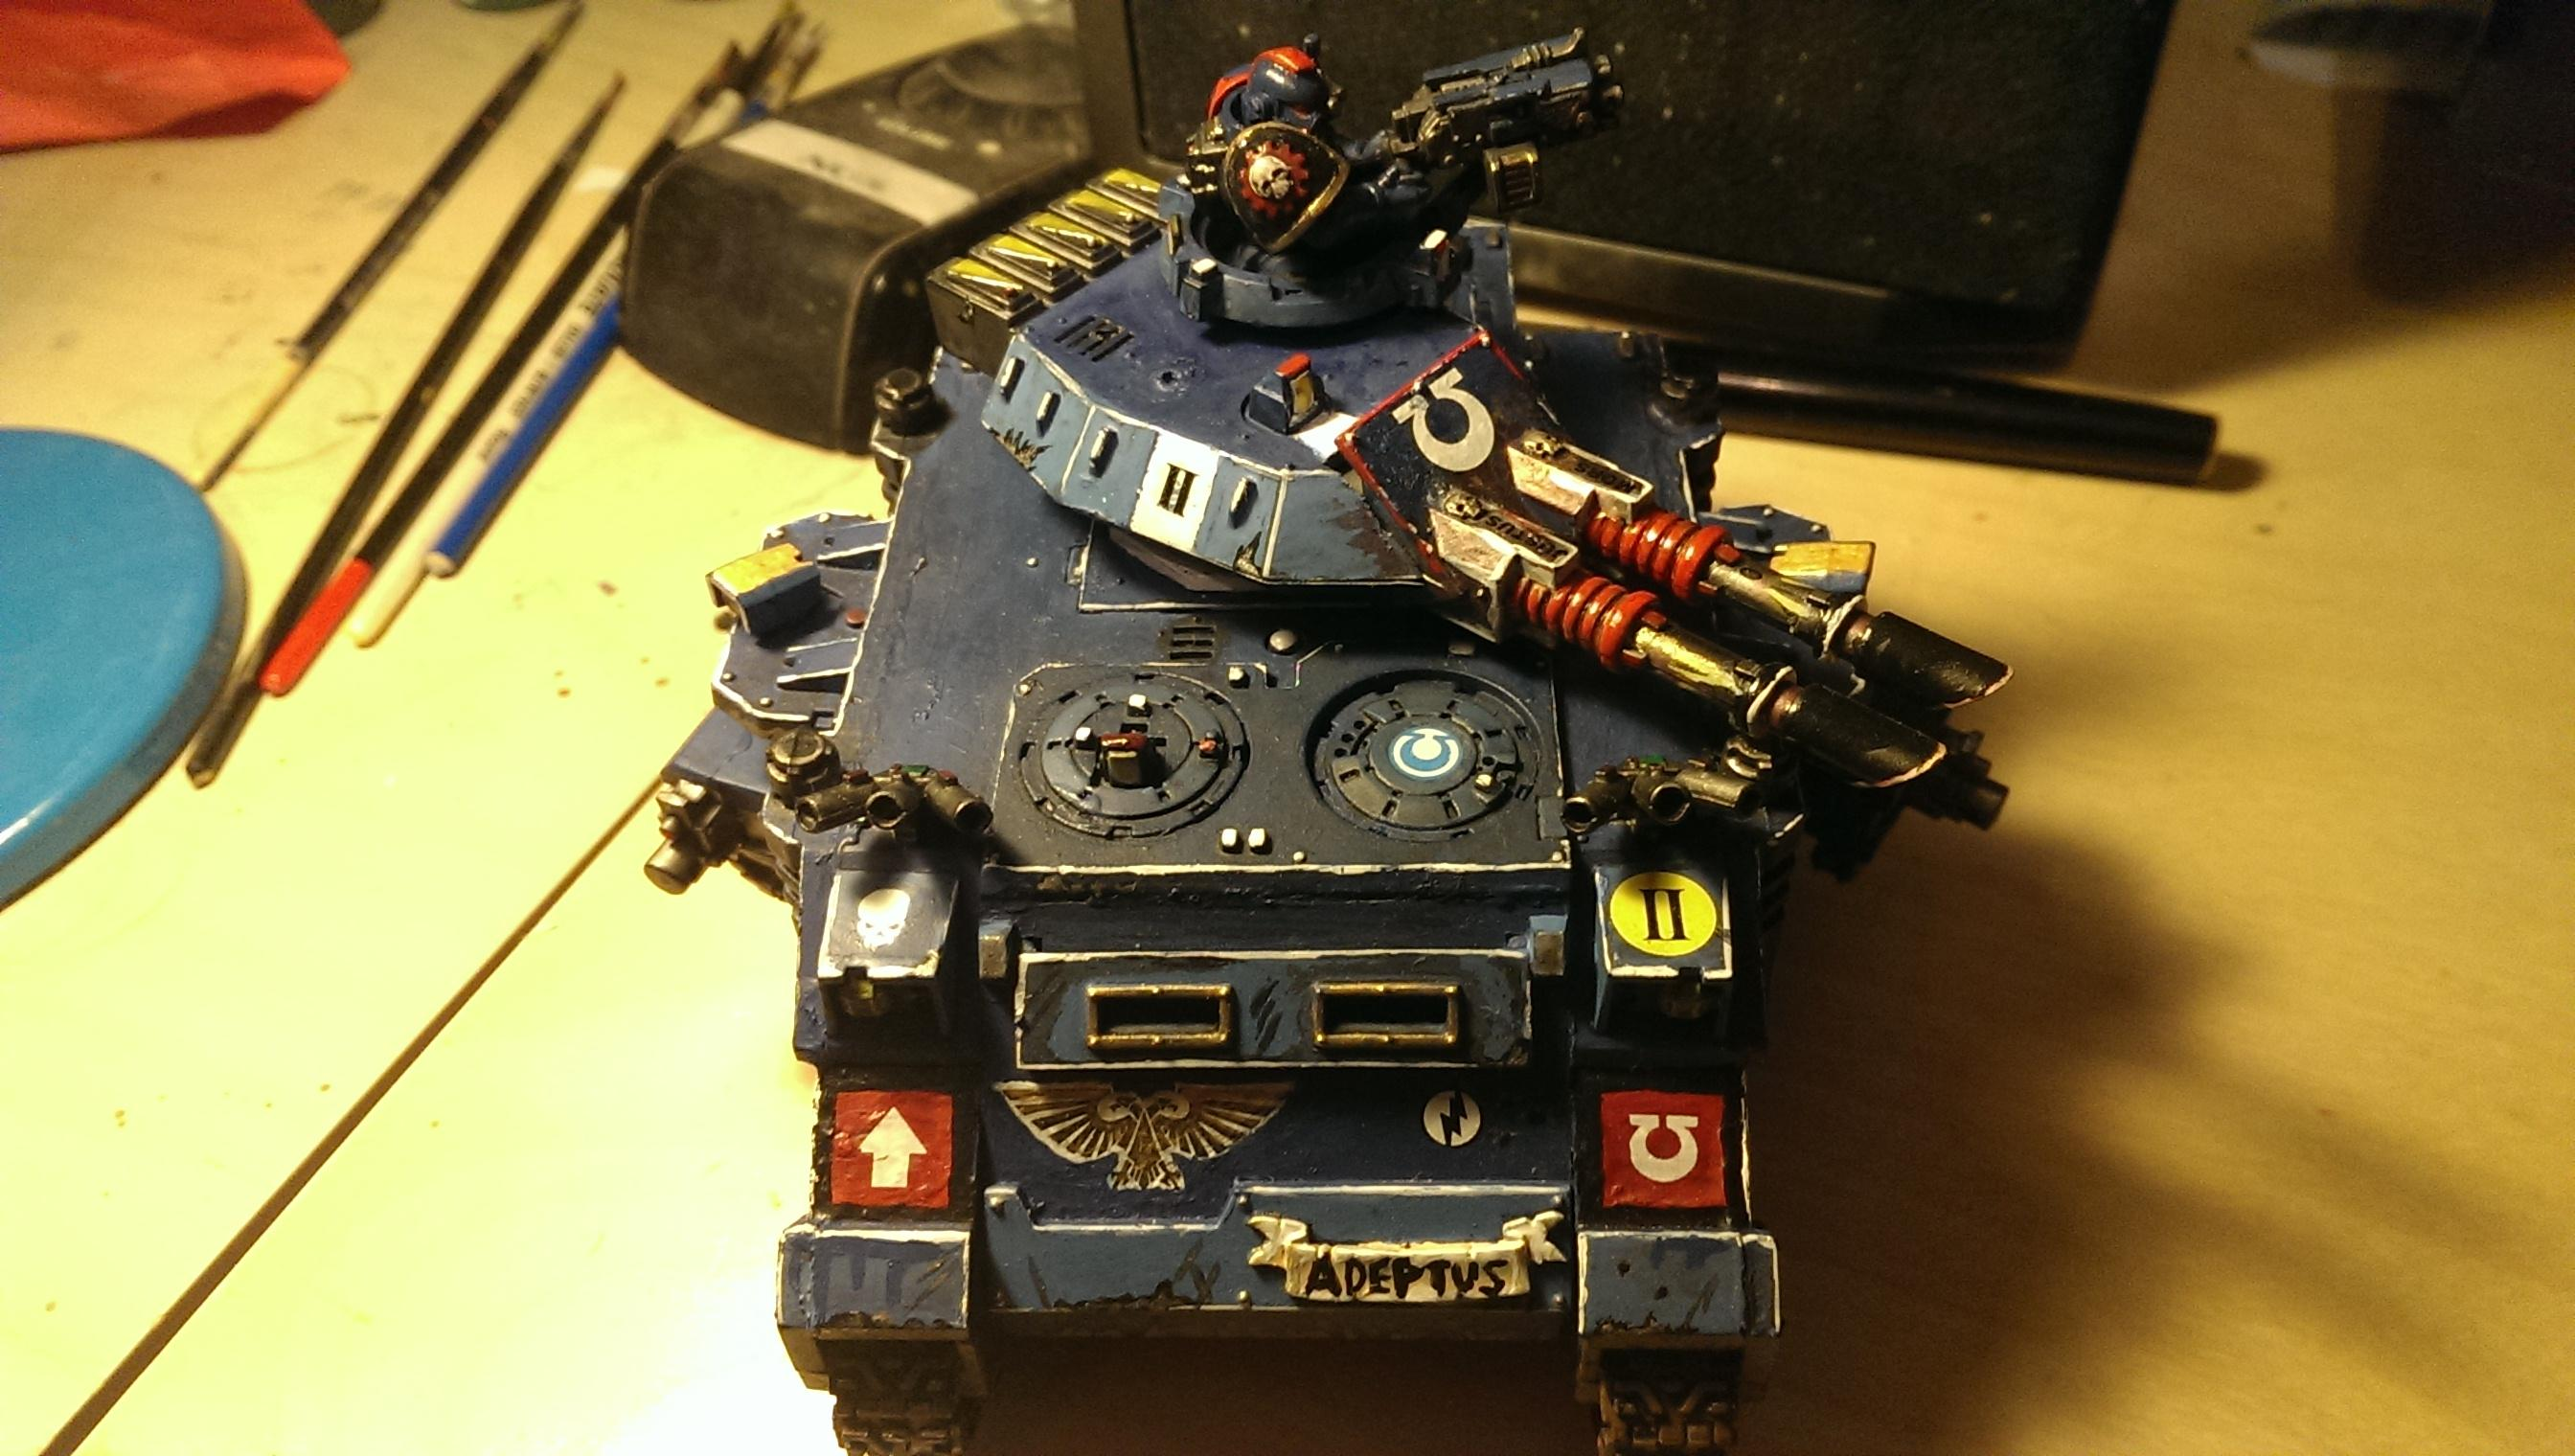 Death, Different, Grand, Heavy Support, Insignias, Macragge, Of, Symbolic, Tank, Ultramar, Vehicle